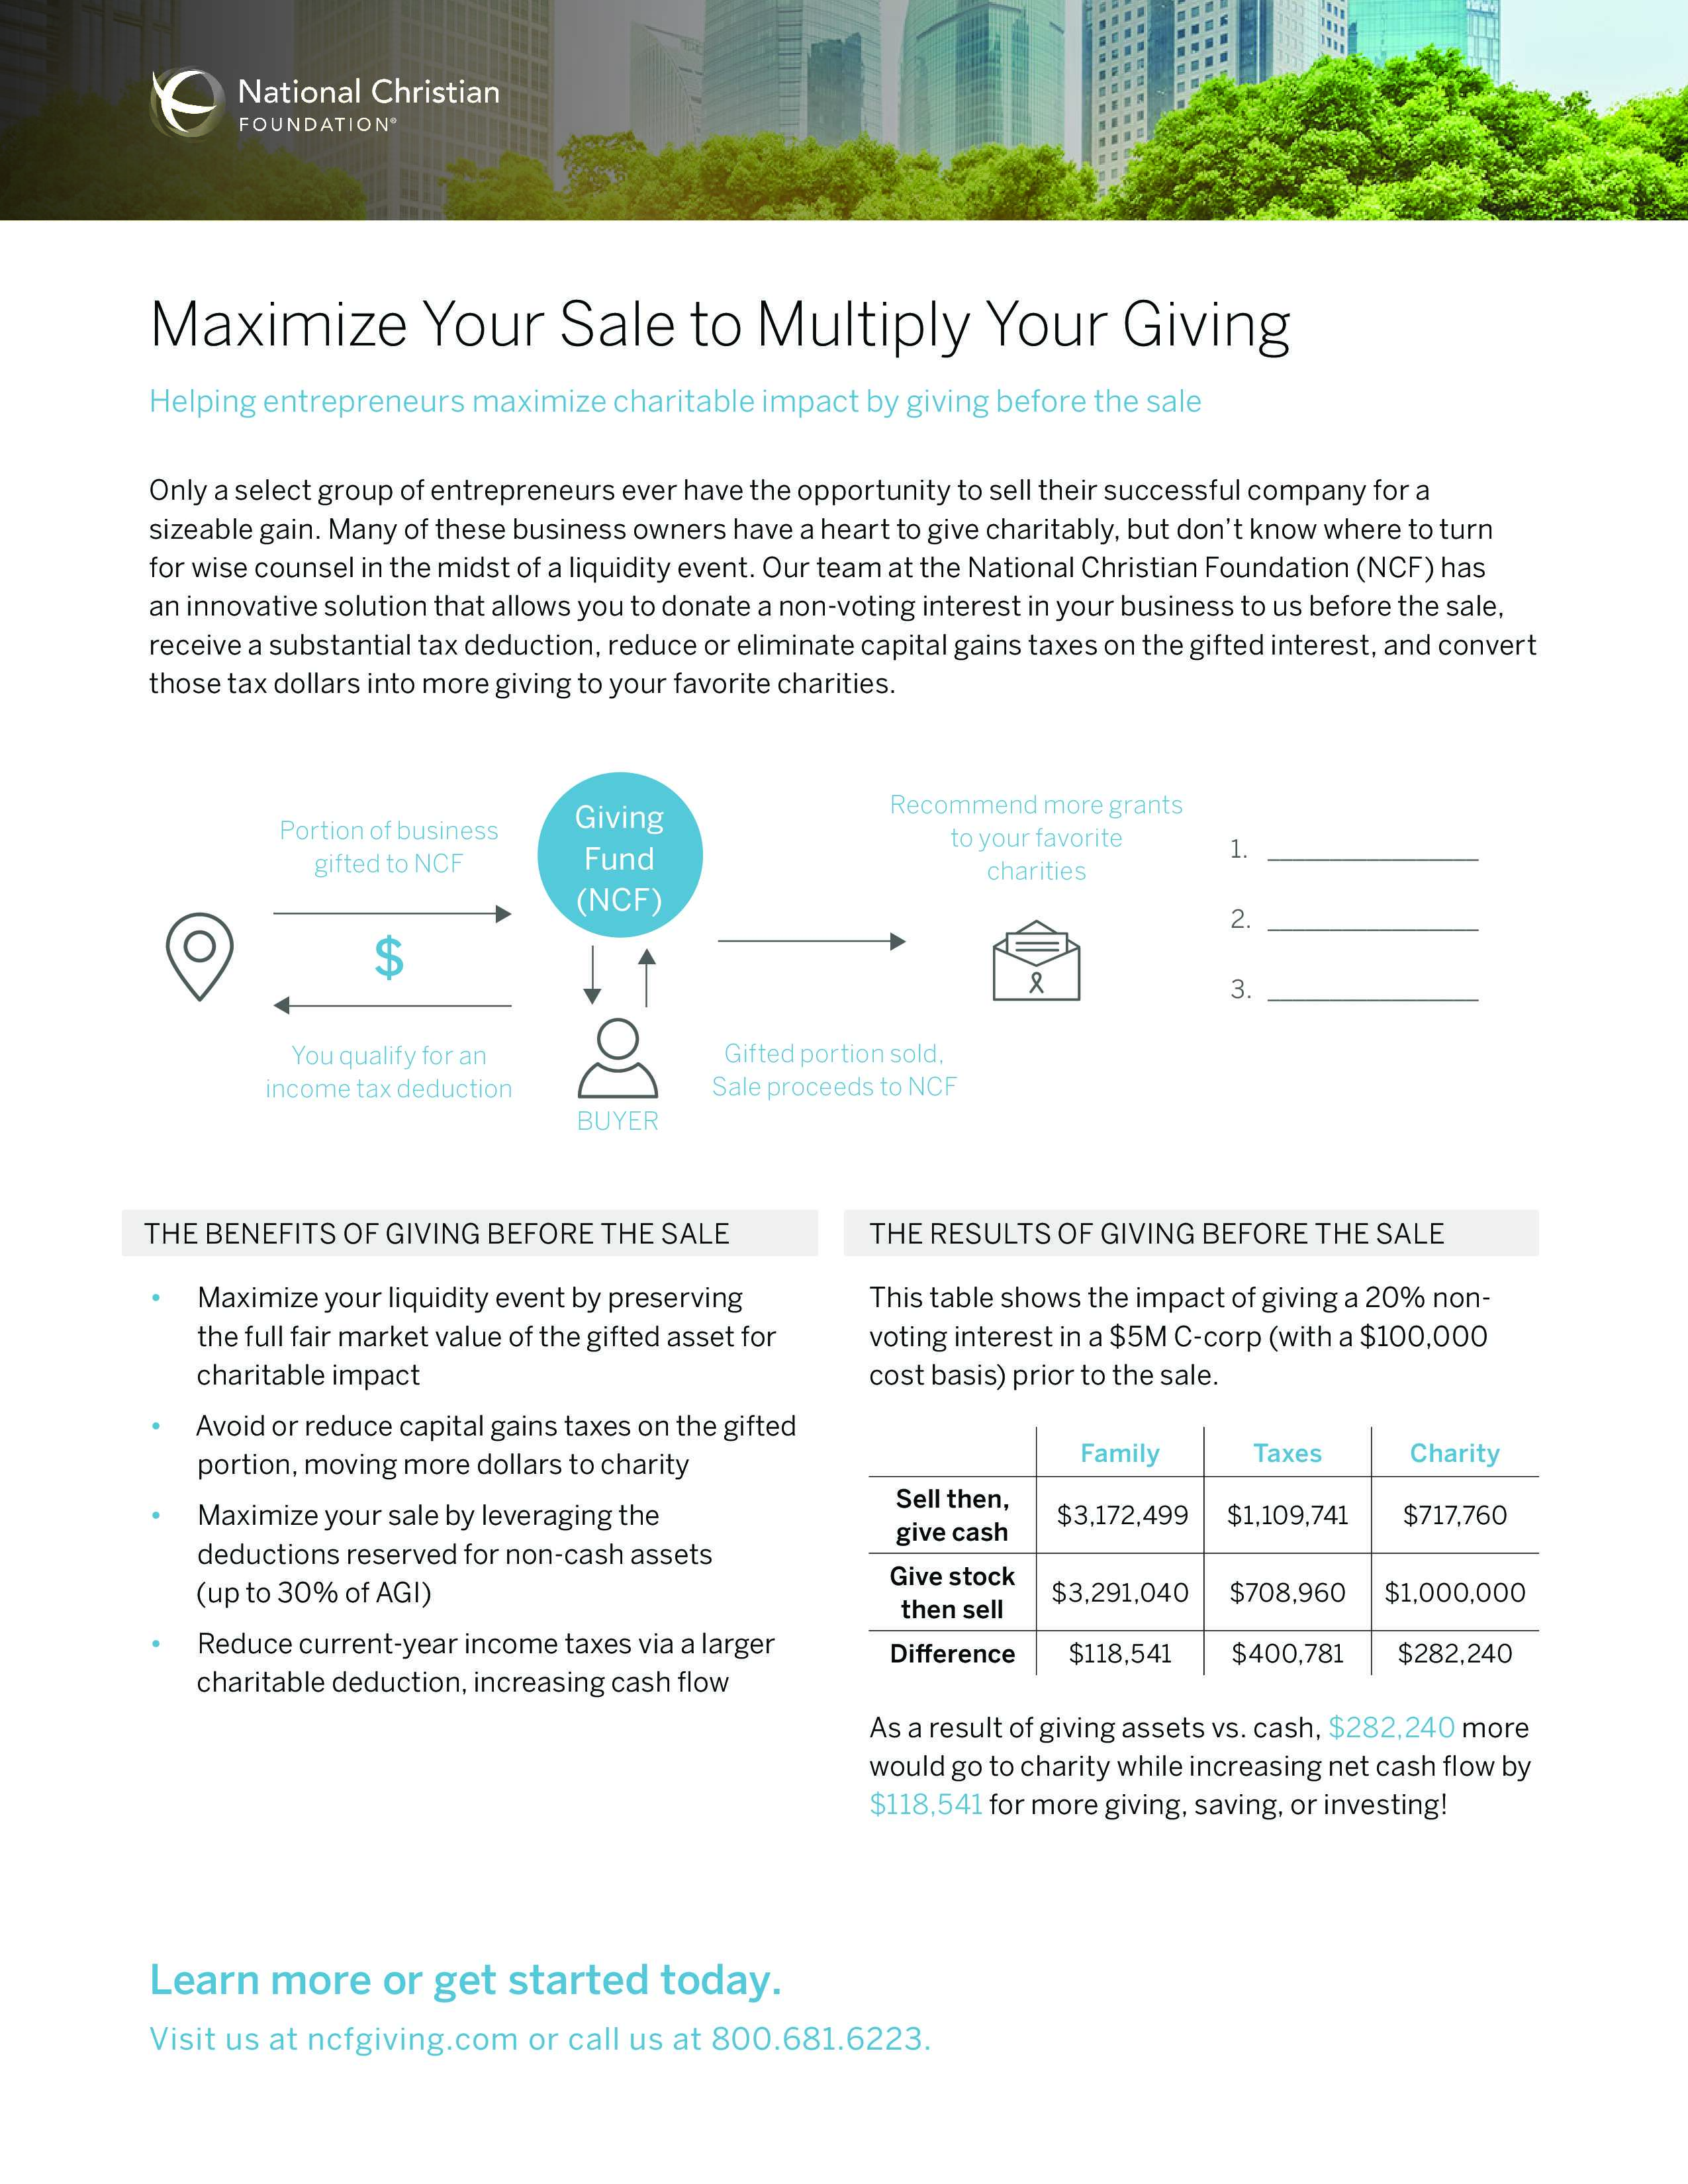 Maximize Your Sale To Multiply Your Giving